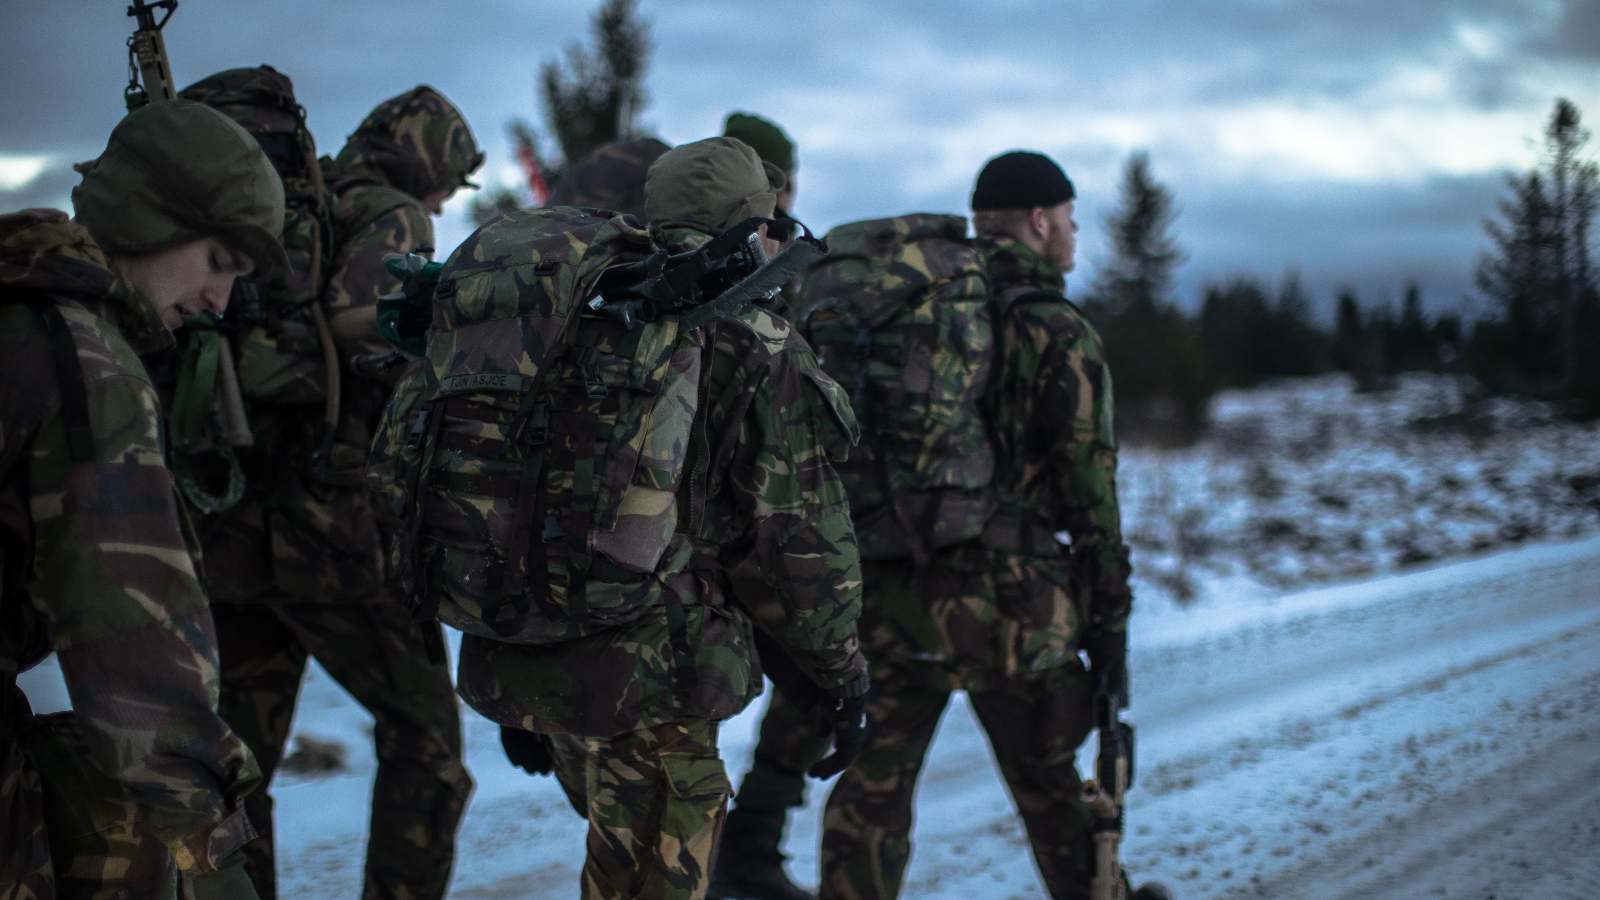 Trident Juncture 2018 is NATO's largest exercise in many years, bringing together around 50,000 personnel from all 29 Allies, plus partners Finland and Sweden. Around 65 vessels, 250 aircraft and 10,000 vehicles will participate.